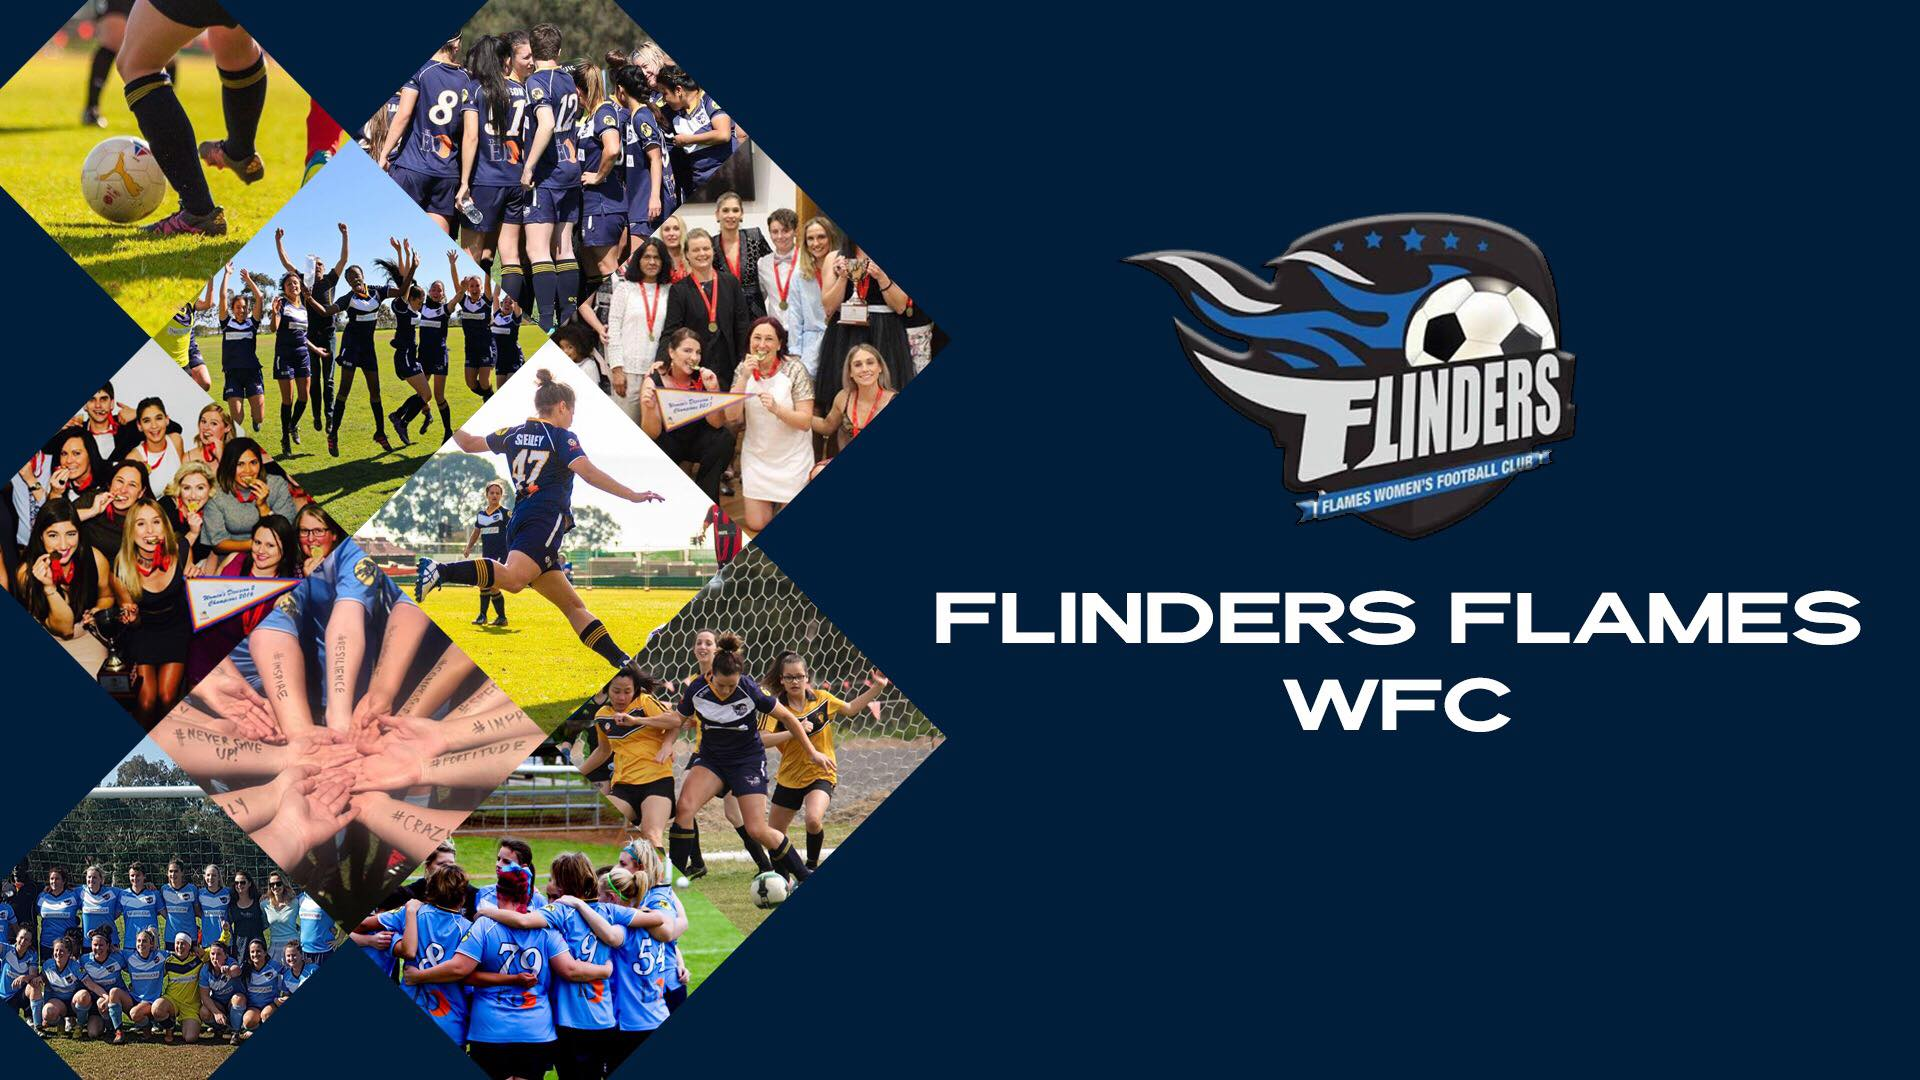 Flinders Flames Women's Football Club